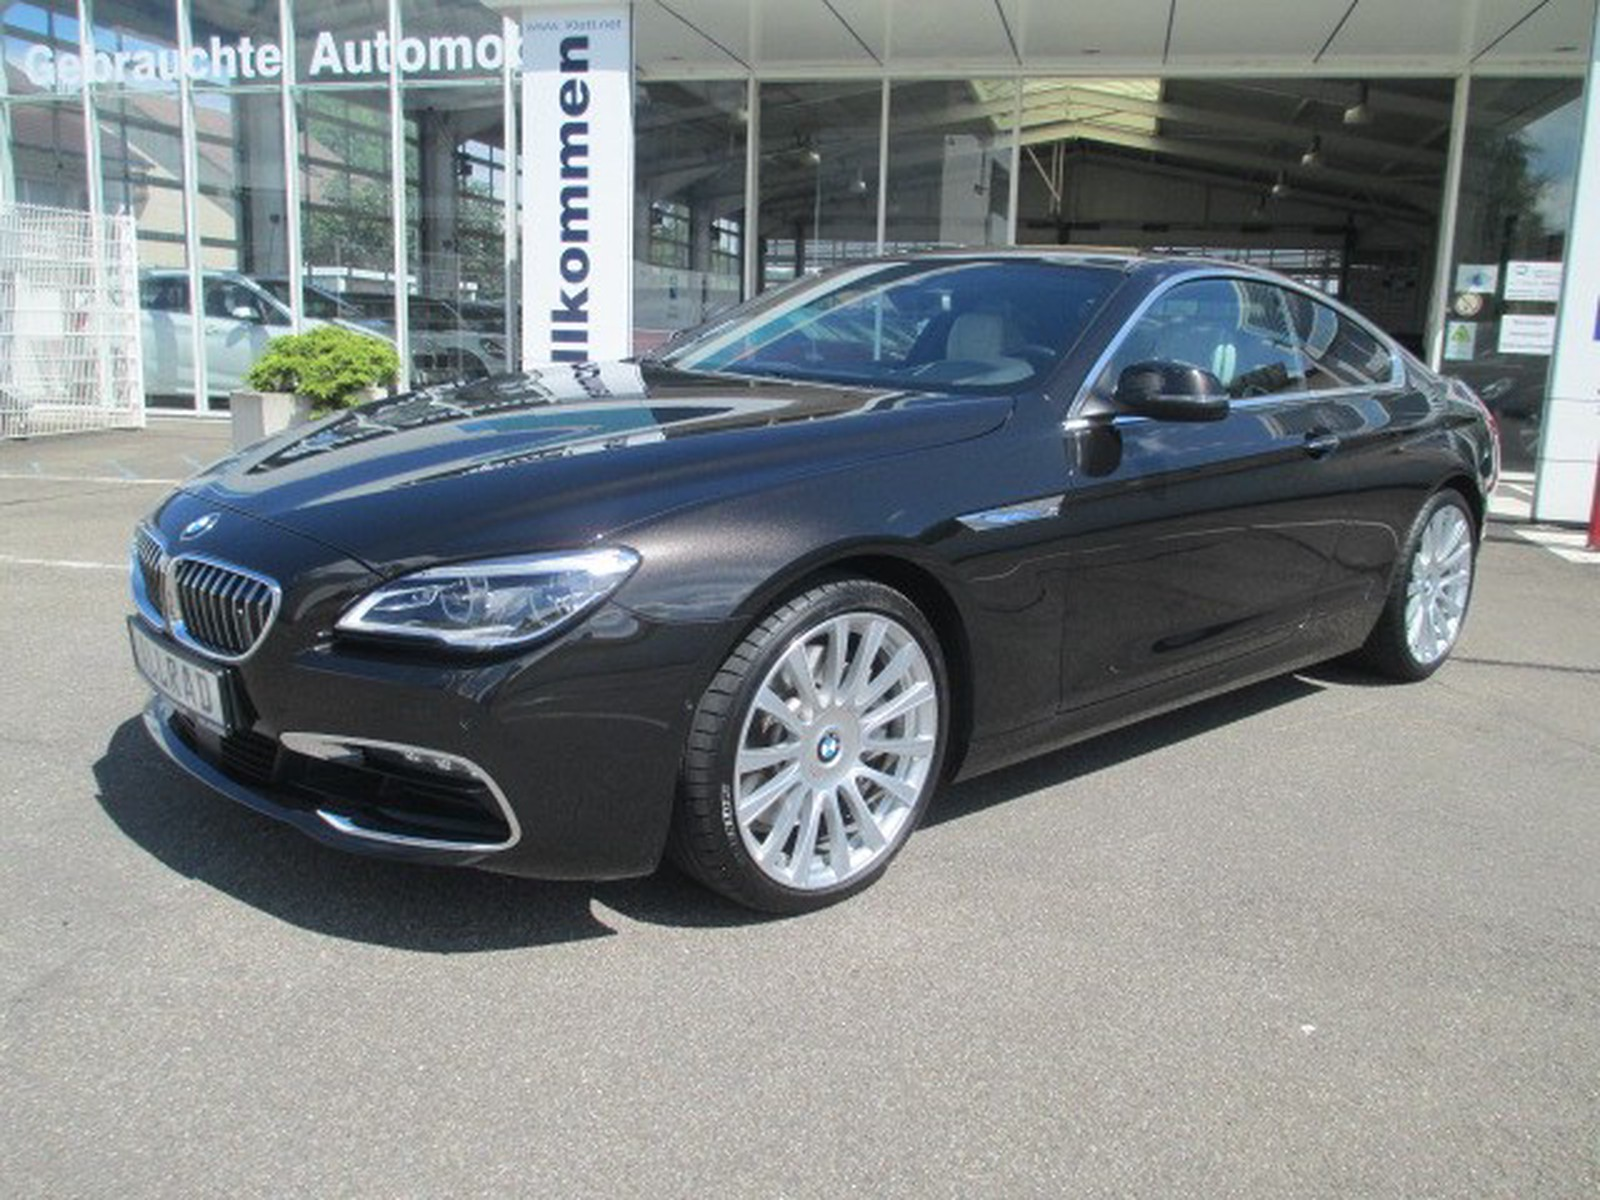 Bmw 650 I Xdrive Coupe Used Buy In Rielasingen Worblingen Price 77850 Eur Int Nr 200416 Sold